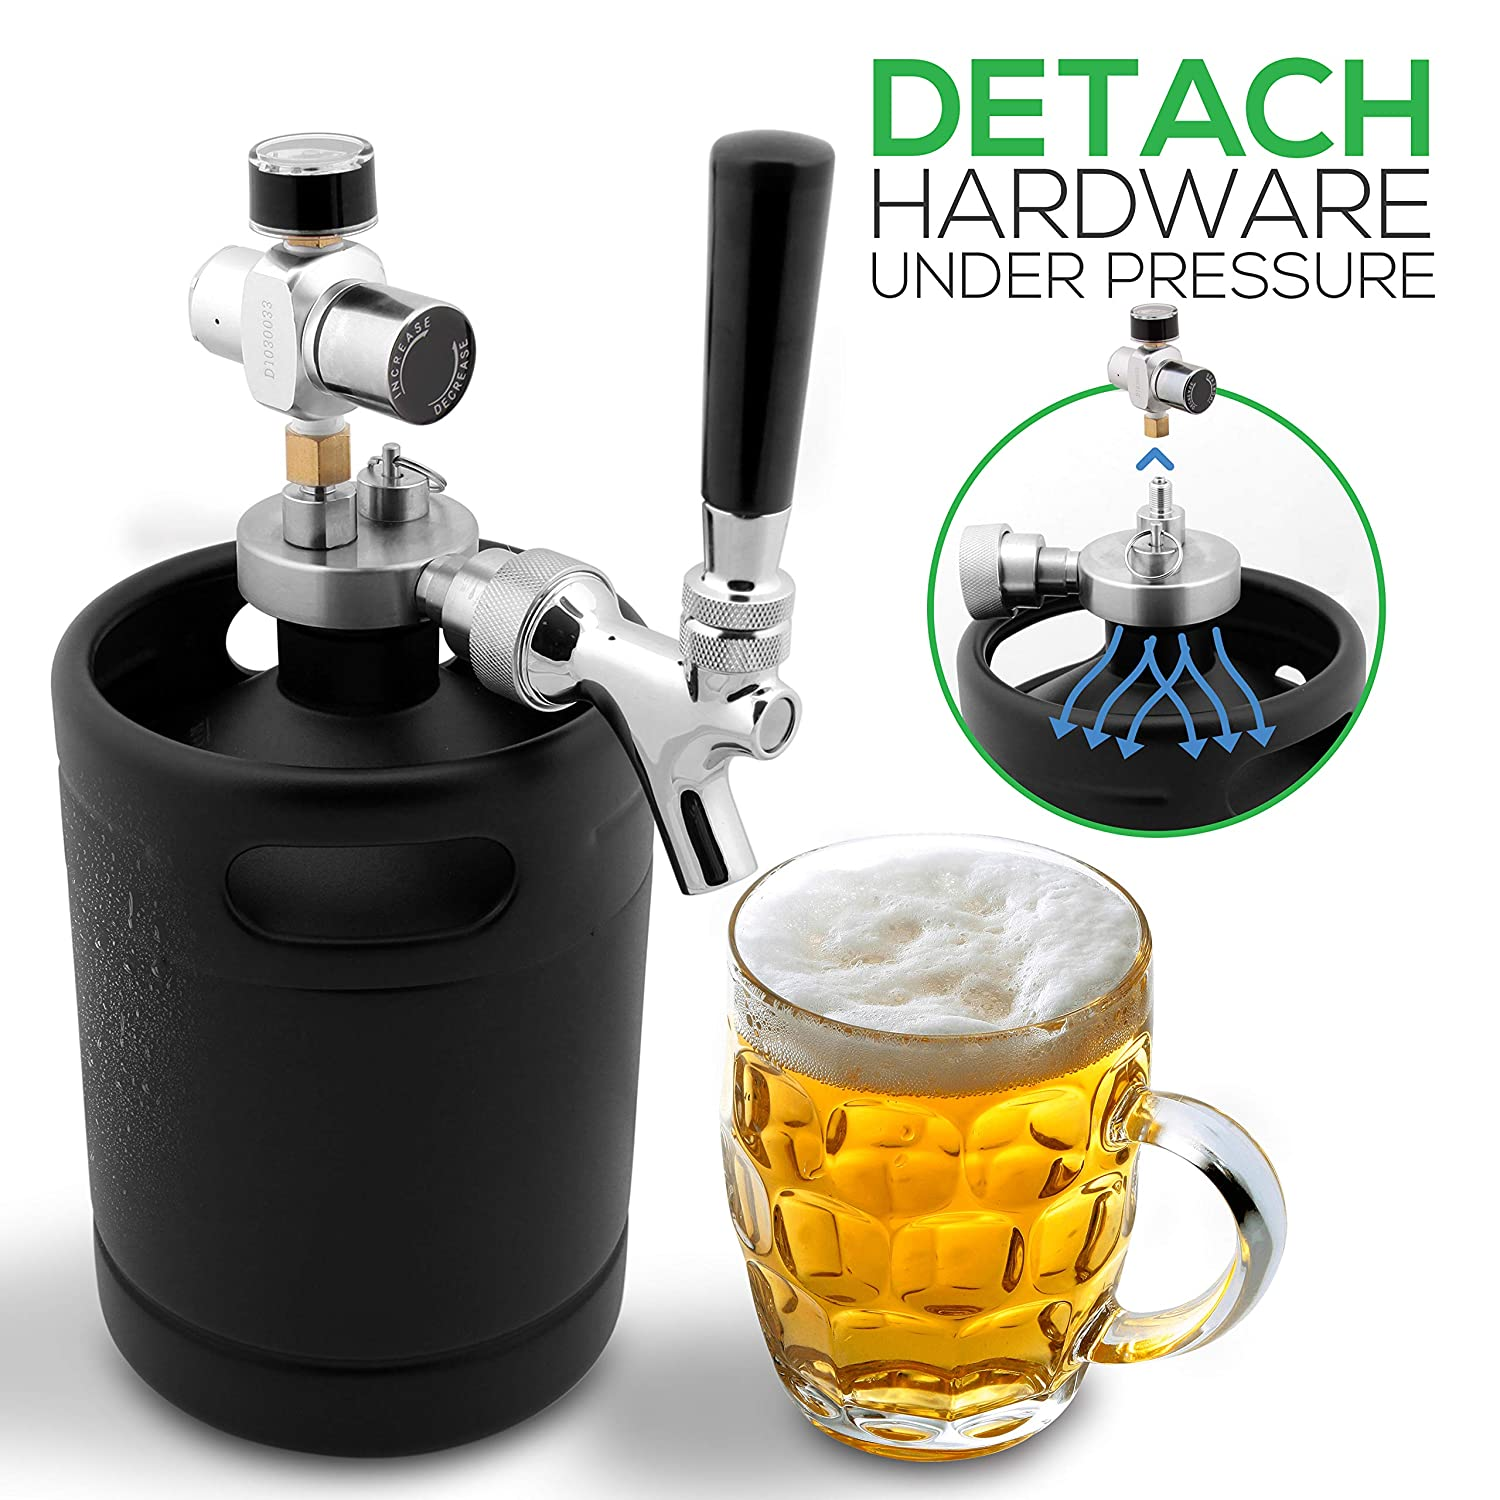 NutriChef Pressurized Mini Keg Beer Growler - Detachable Aluminum Regulator & Spout Easy Storage Under Pressure - Black Matte Powder Coated 64oz Pressurized Growler Homebrew Beer Dispenser - PKBRTP60